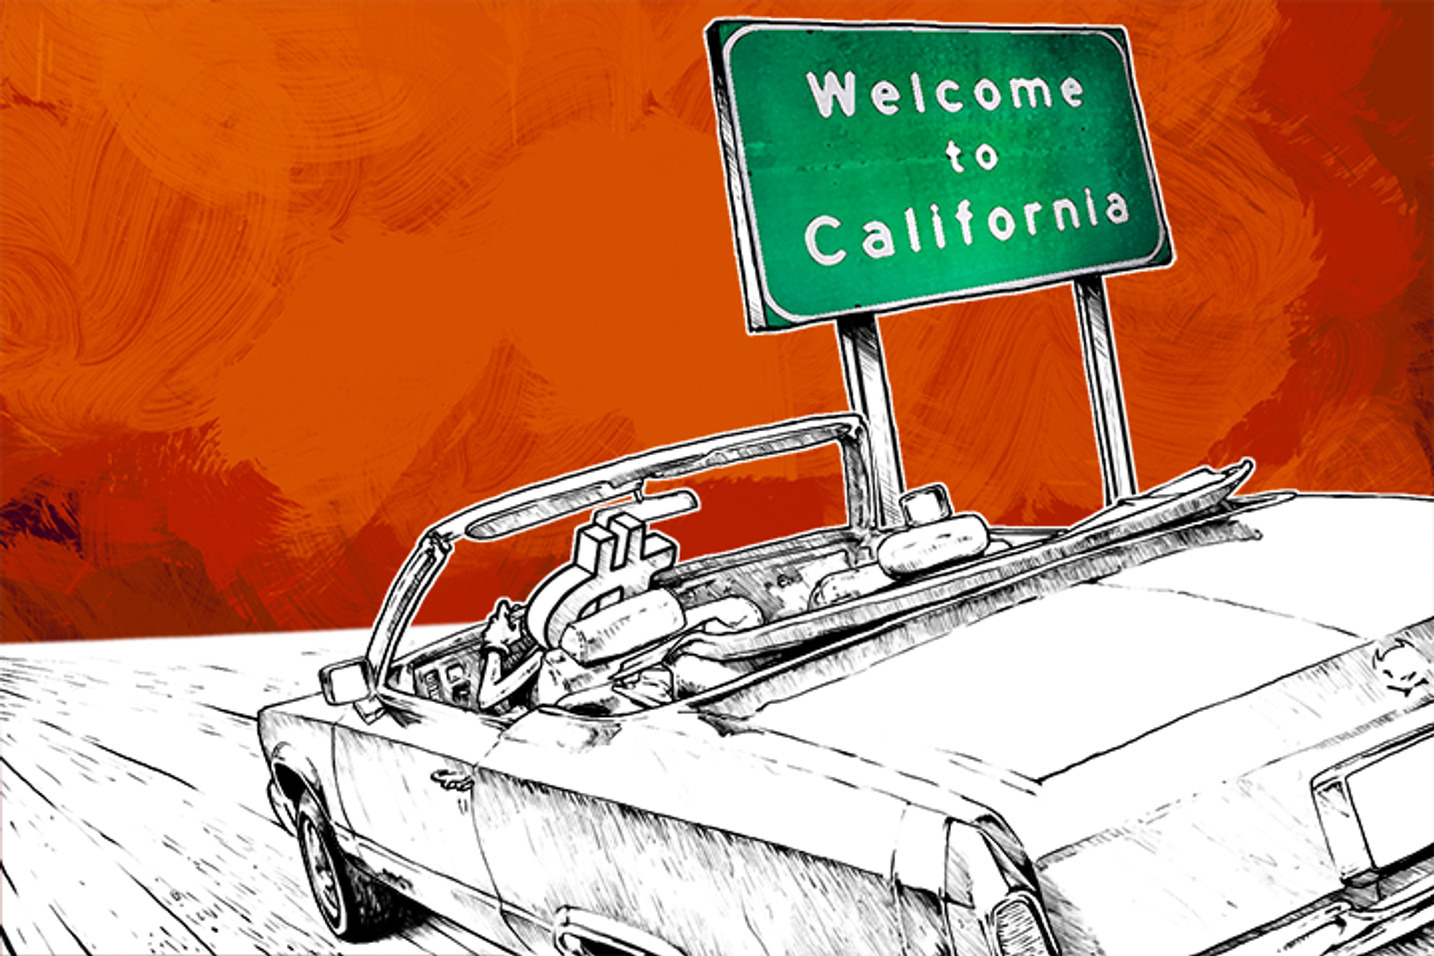 California Governor Approves Bitcoin for Transactions